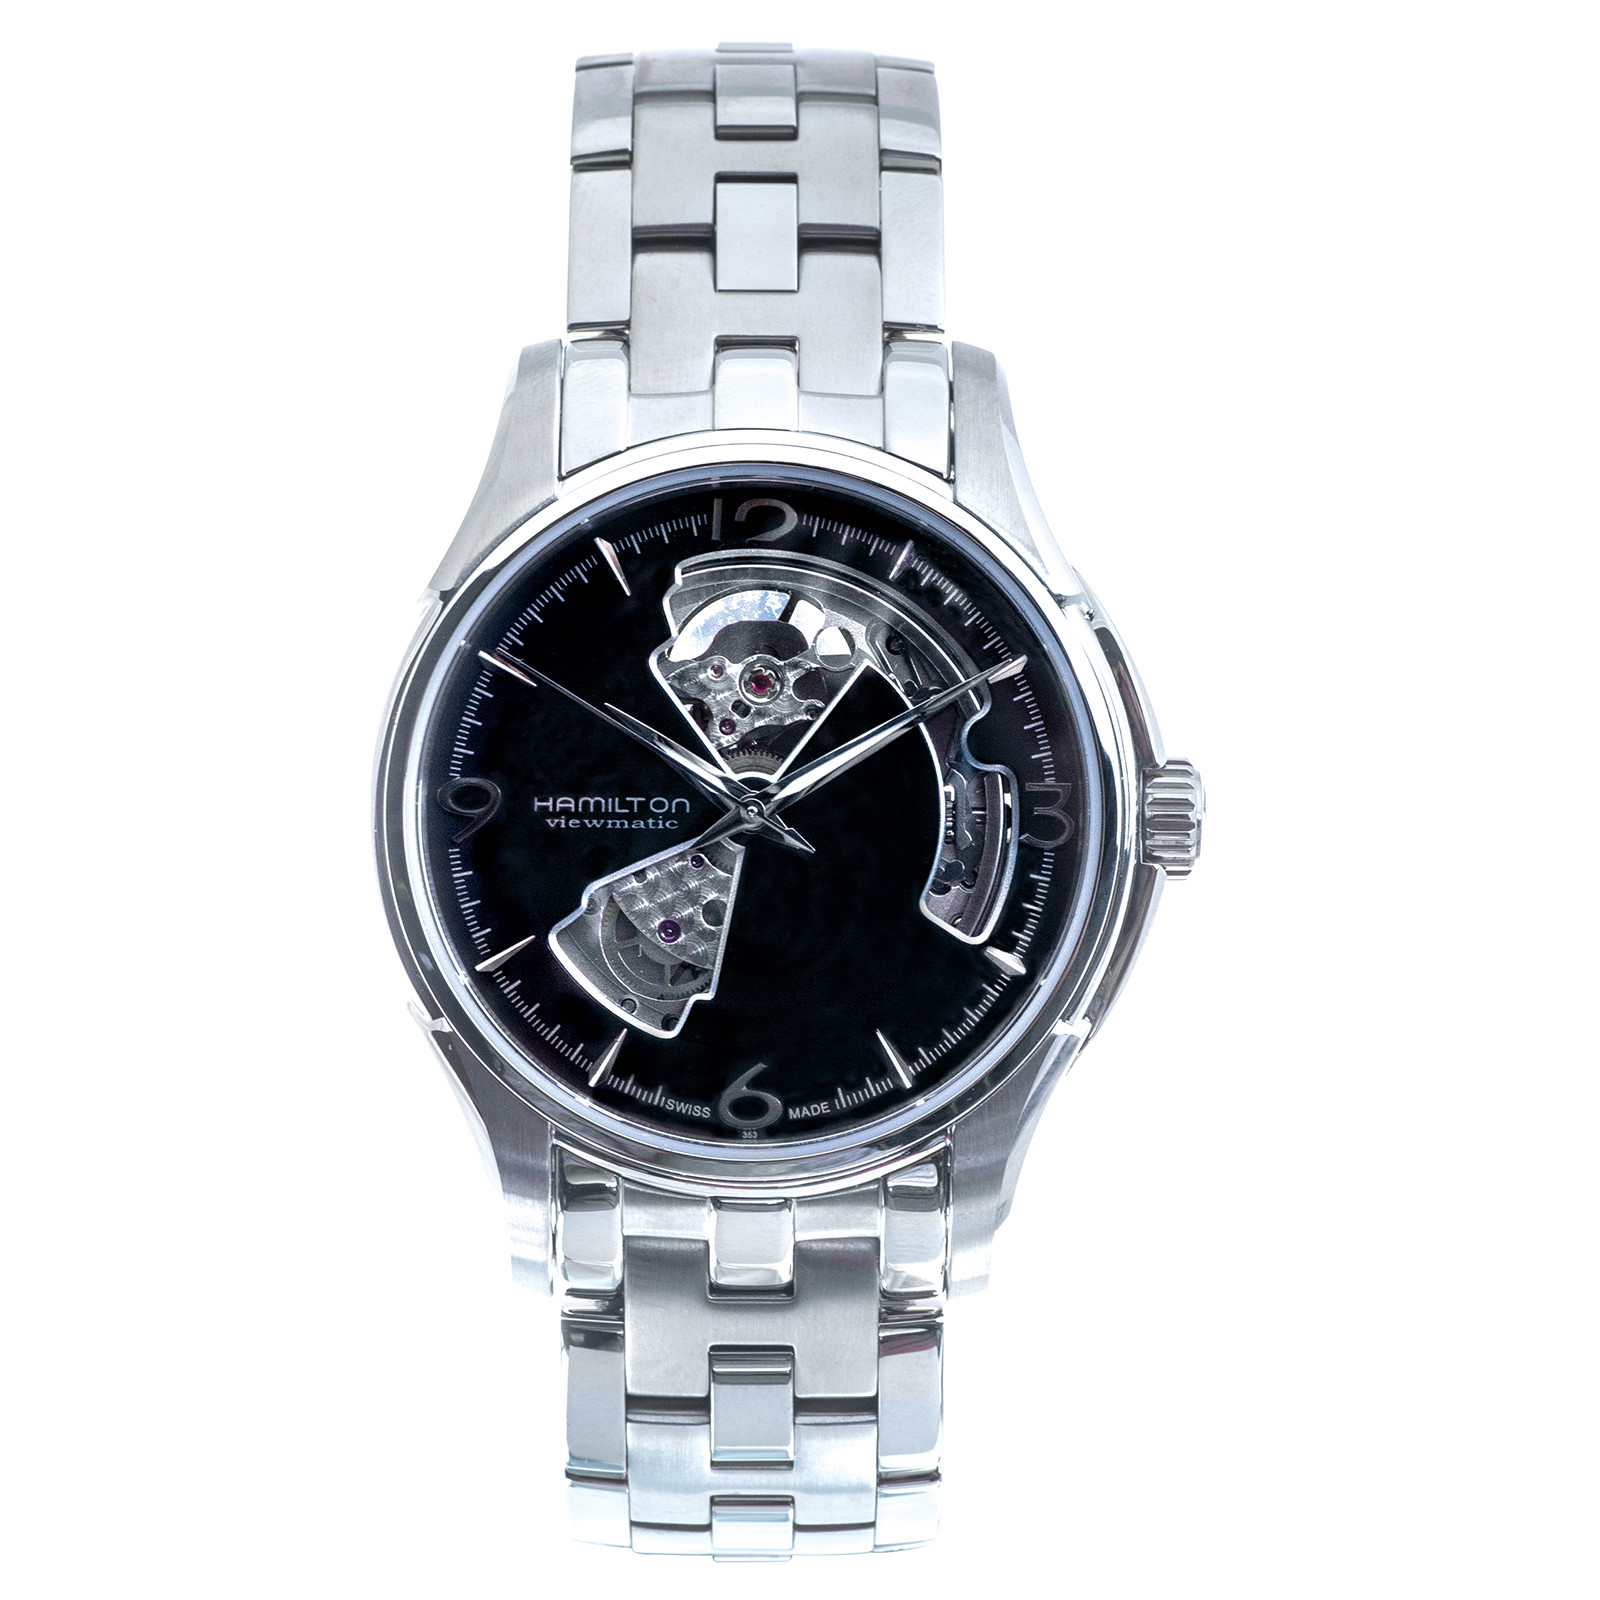 New Hamilton Jazzmaster Open Heart Viewmatic